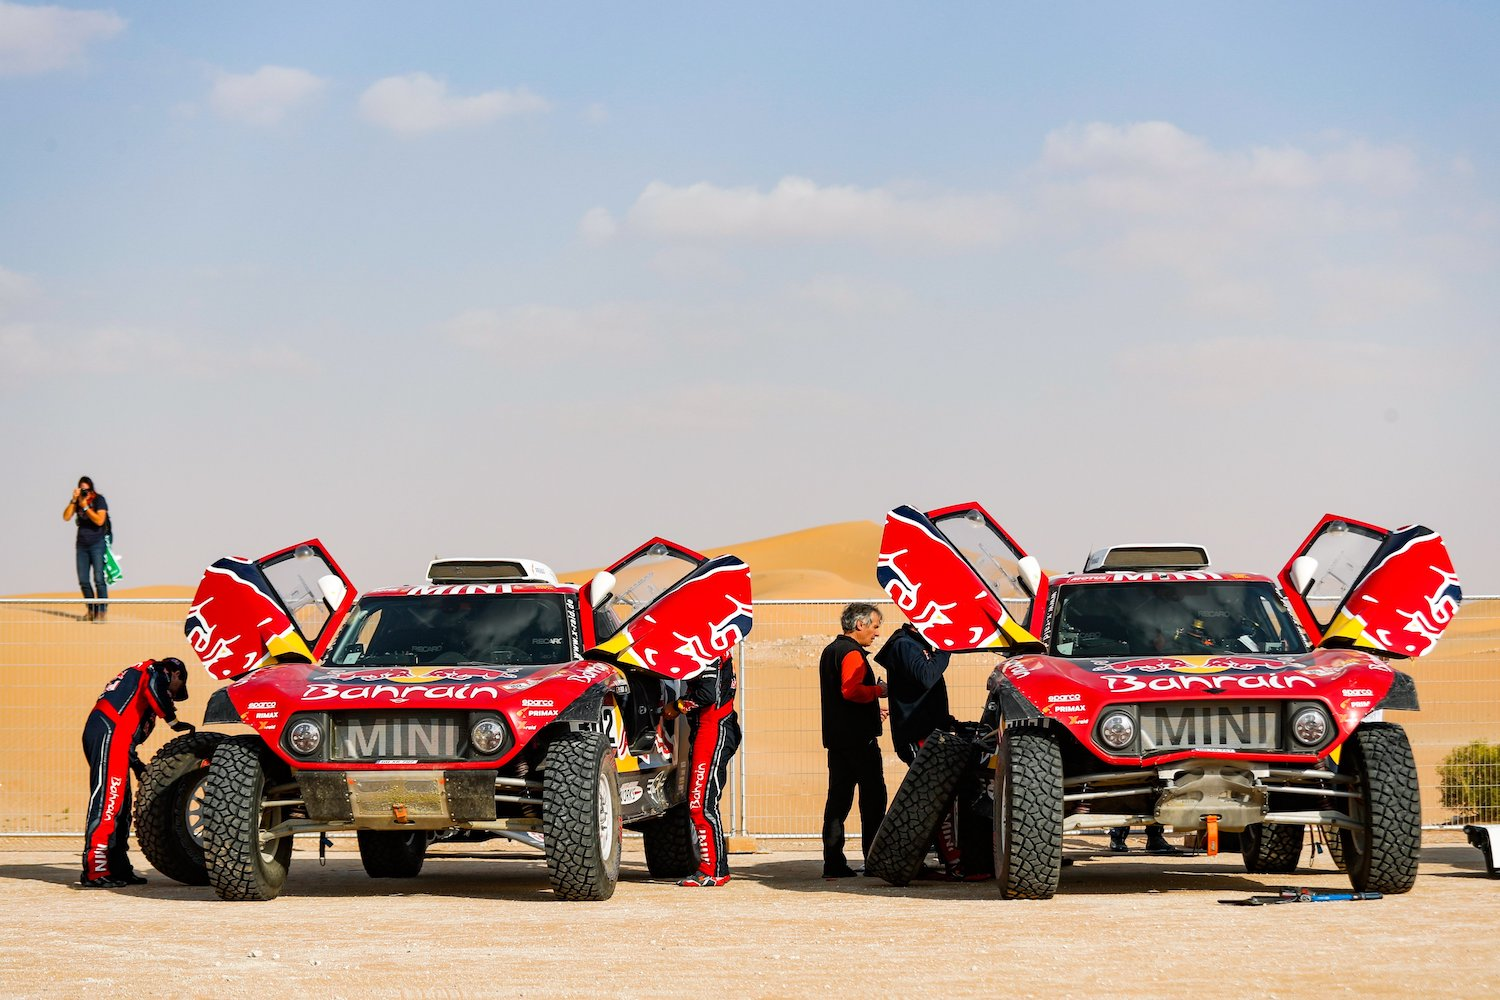 rally cars front